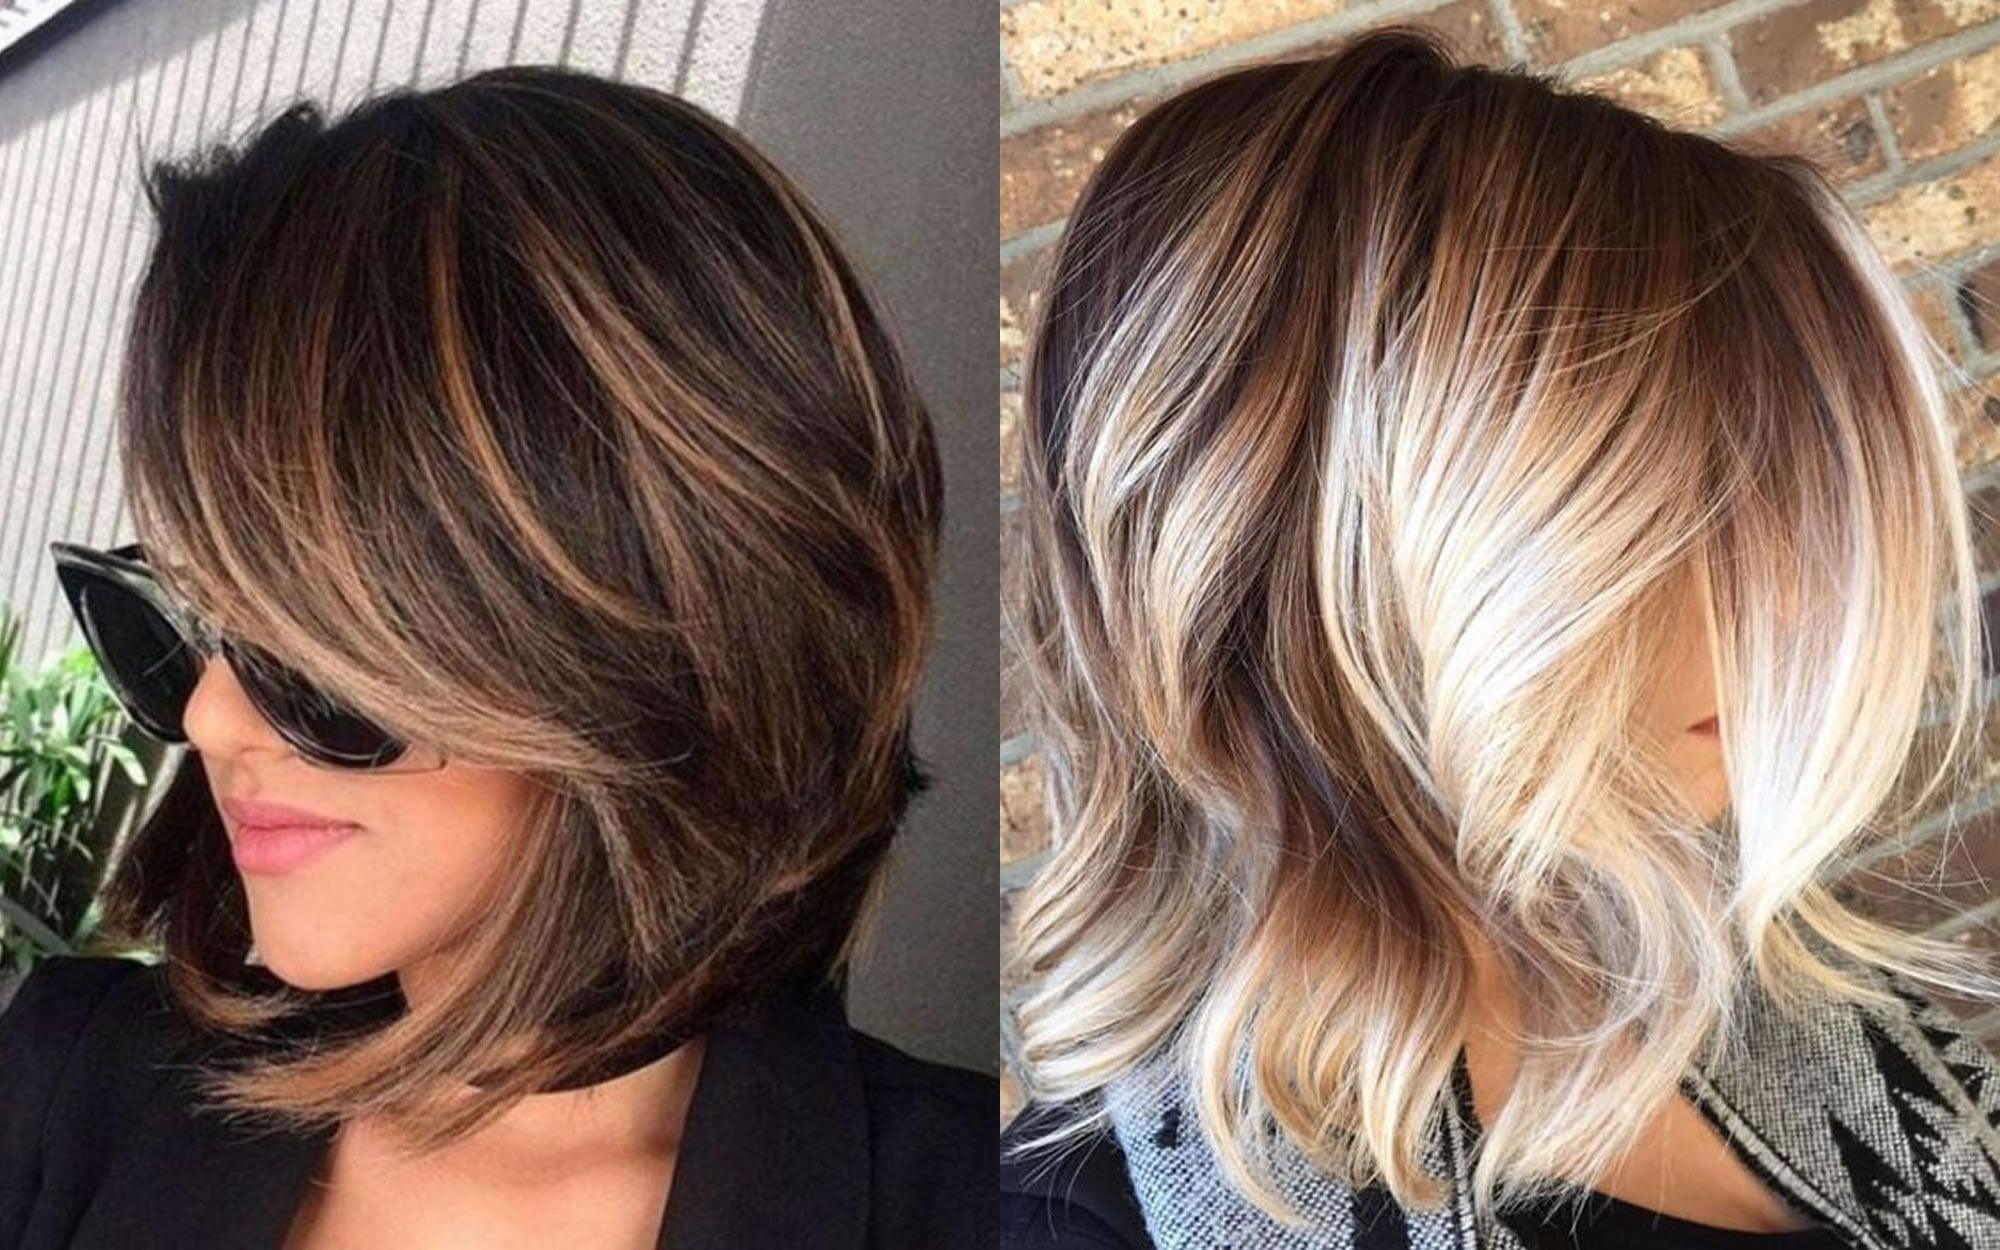 Hair Styles For Short Hair With Color: The Best 50 Balayage Bob Hairstyles (Short+Long